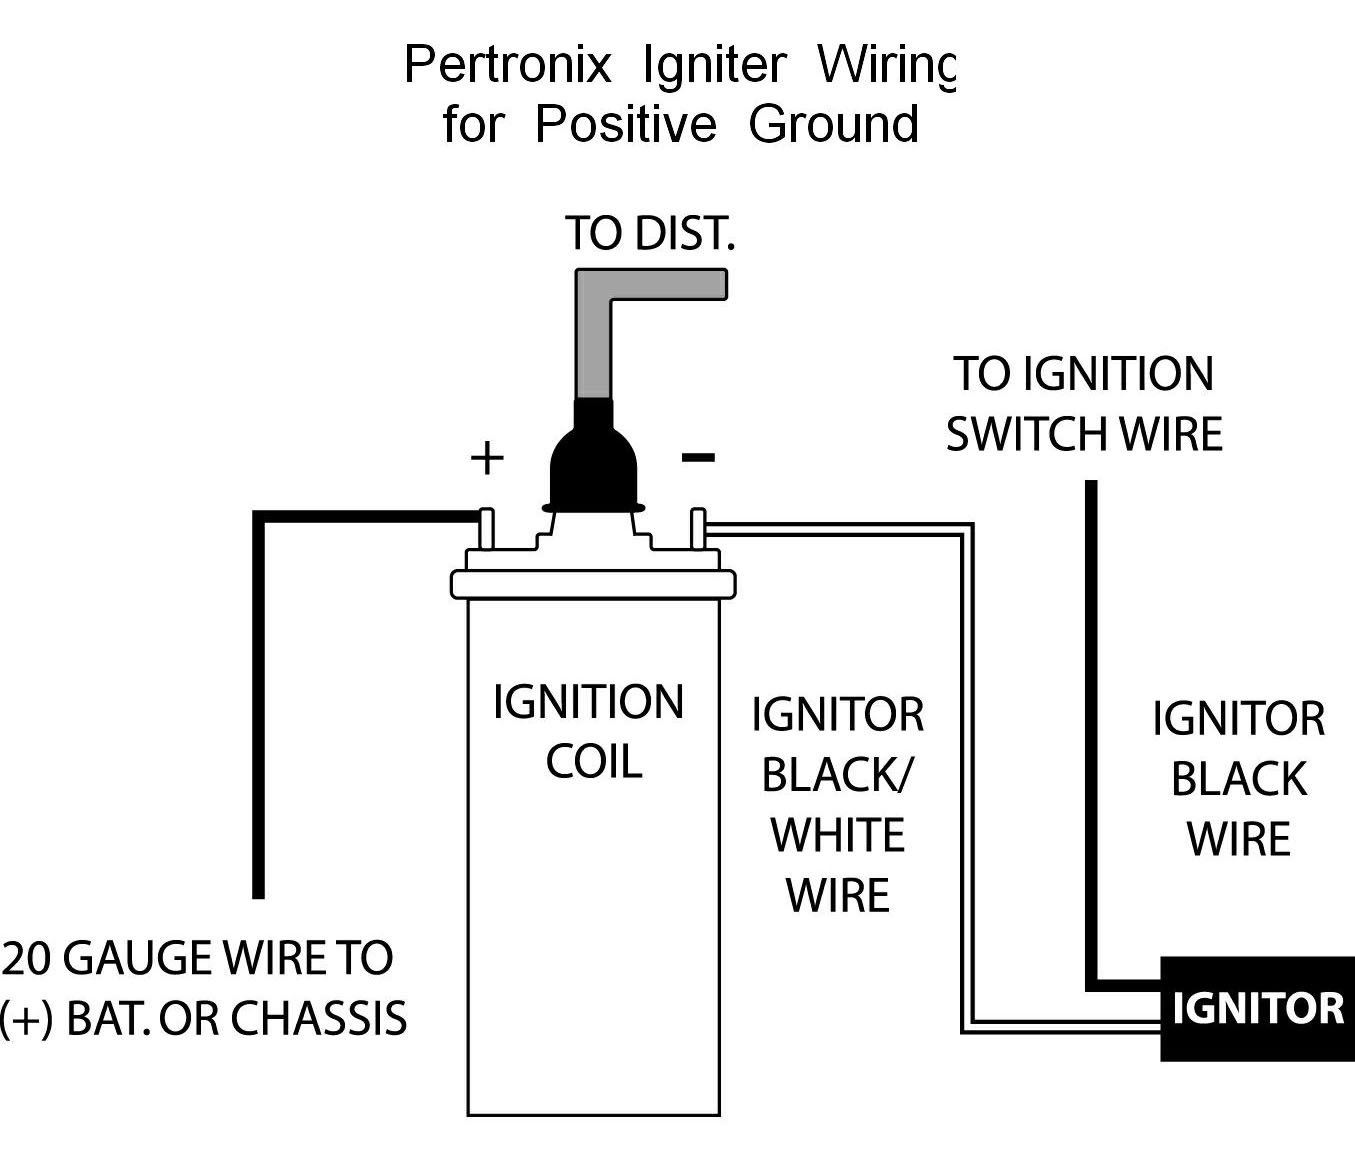 PerPosGndWiring pertronix positive ground wiring